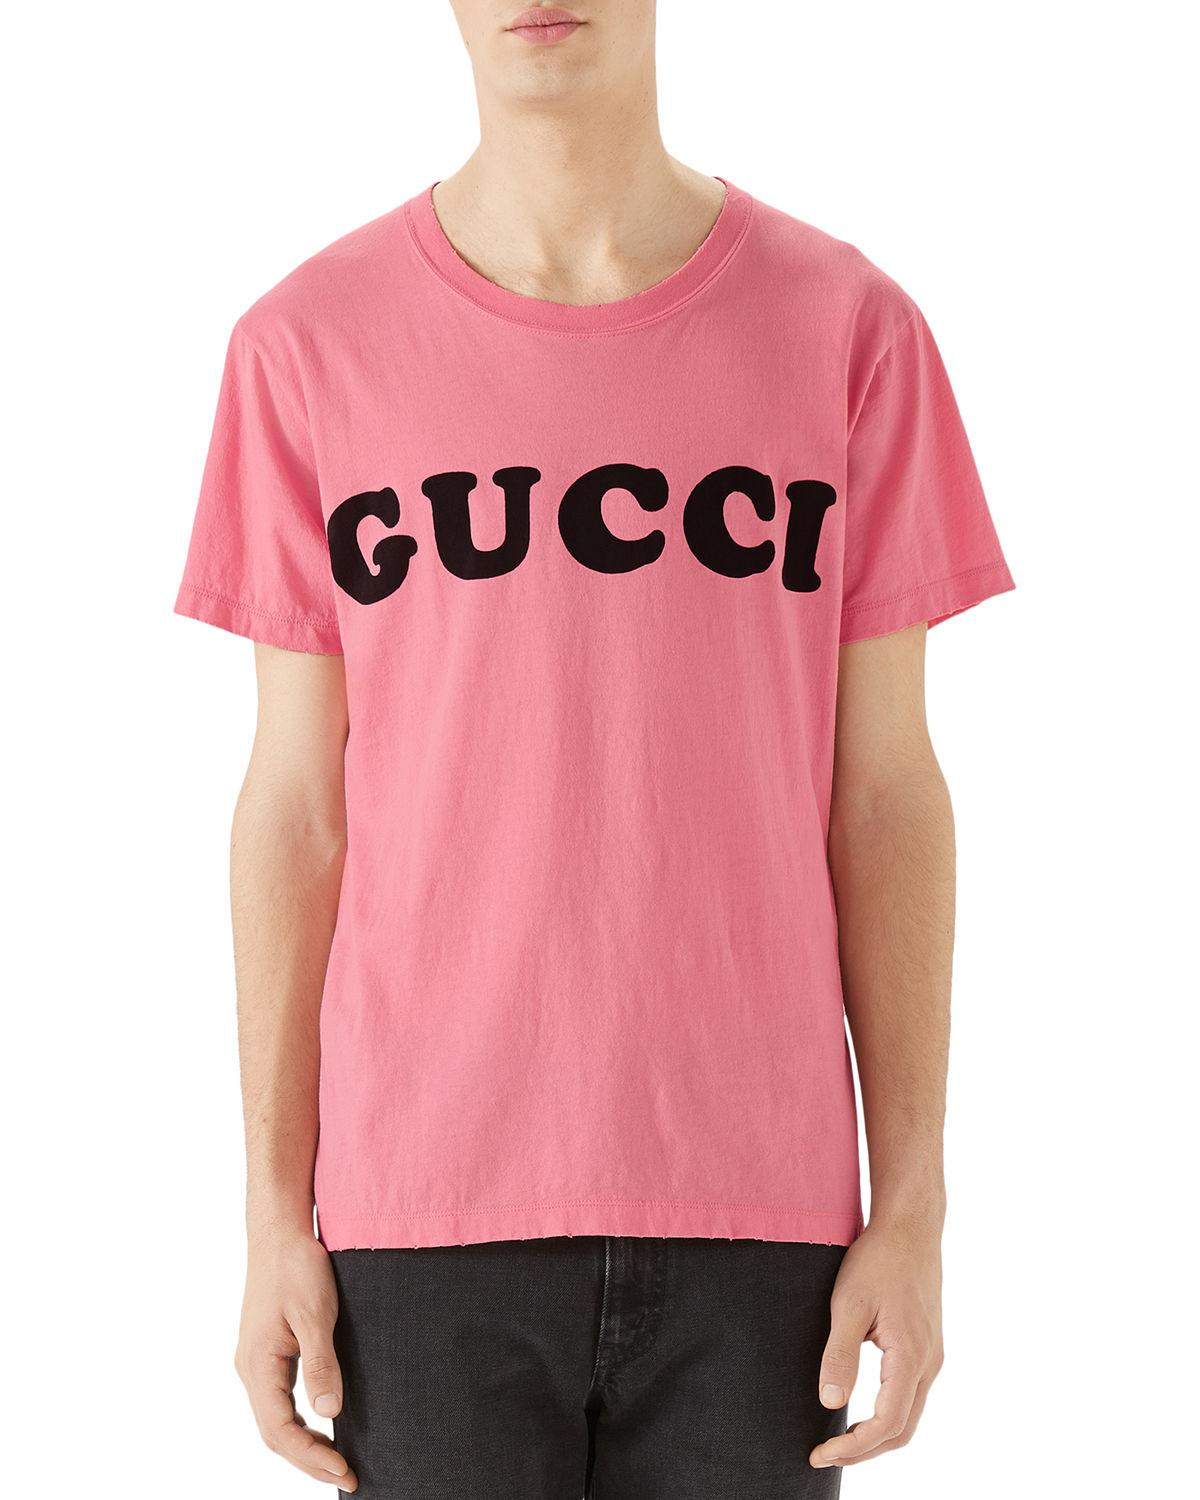 780cf20f061 Mens Gucci T Shirts Cheap - BCD Tofu House